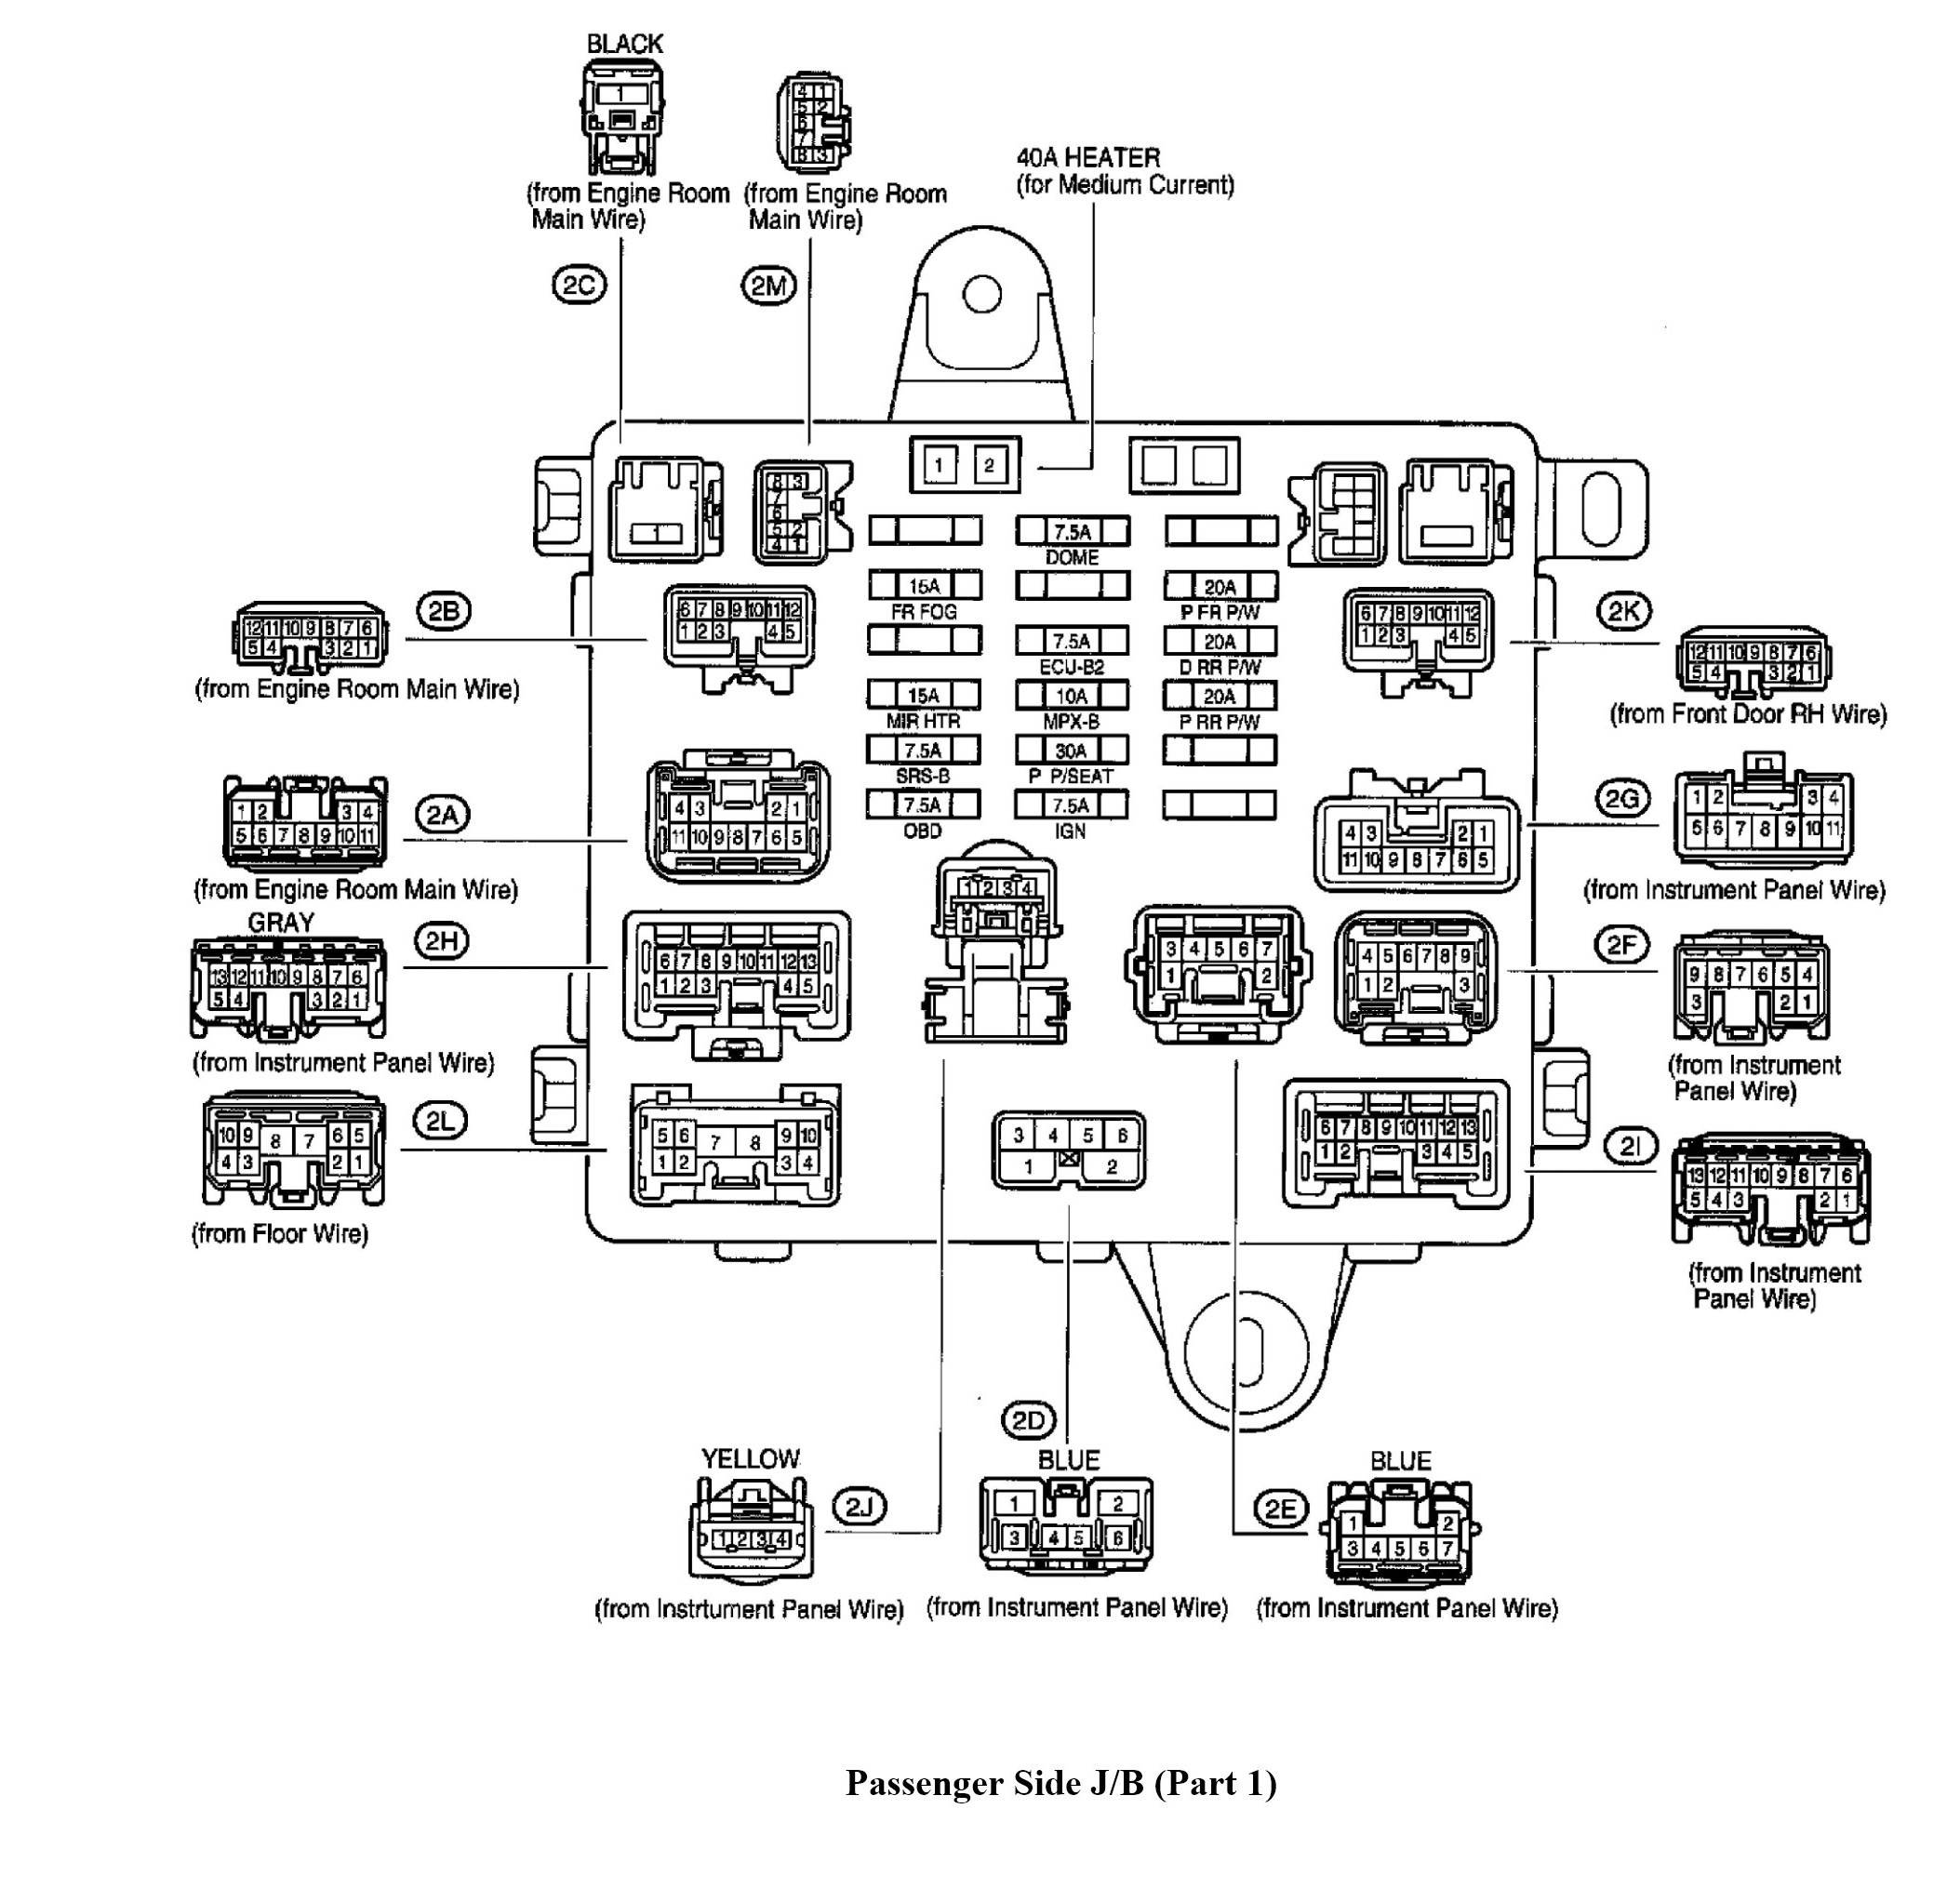 2002 Lexus Rx300 Fuse Box Diagram Wire Center \u2022 GS300 On 22 1995 1995  Lexus Gs300 Fuse Diagram